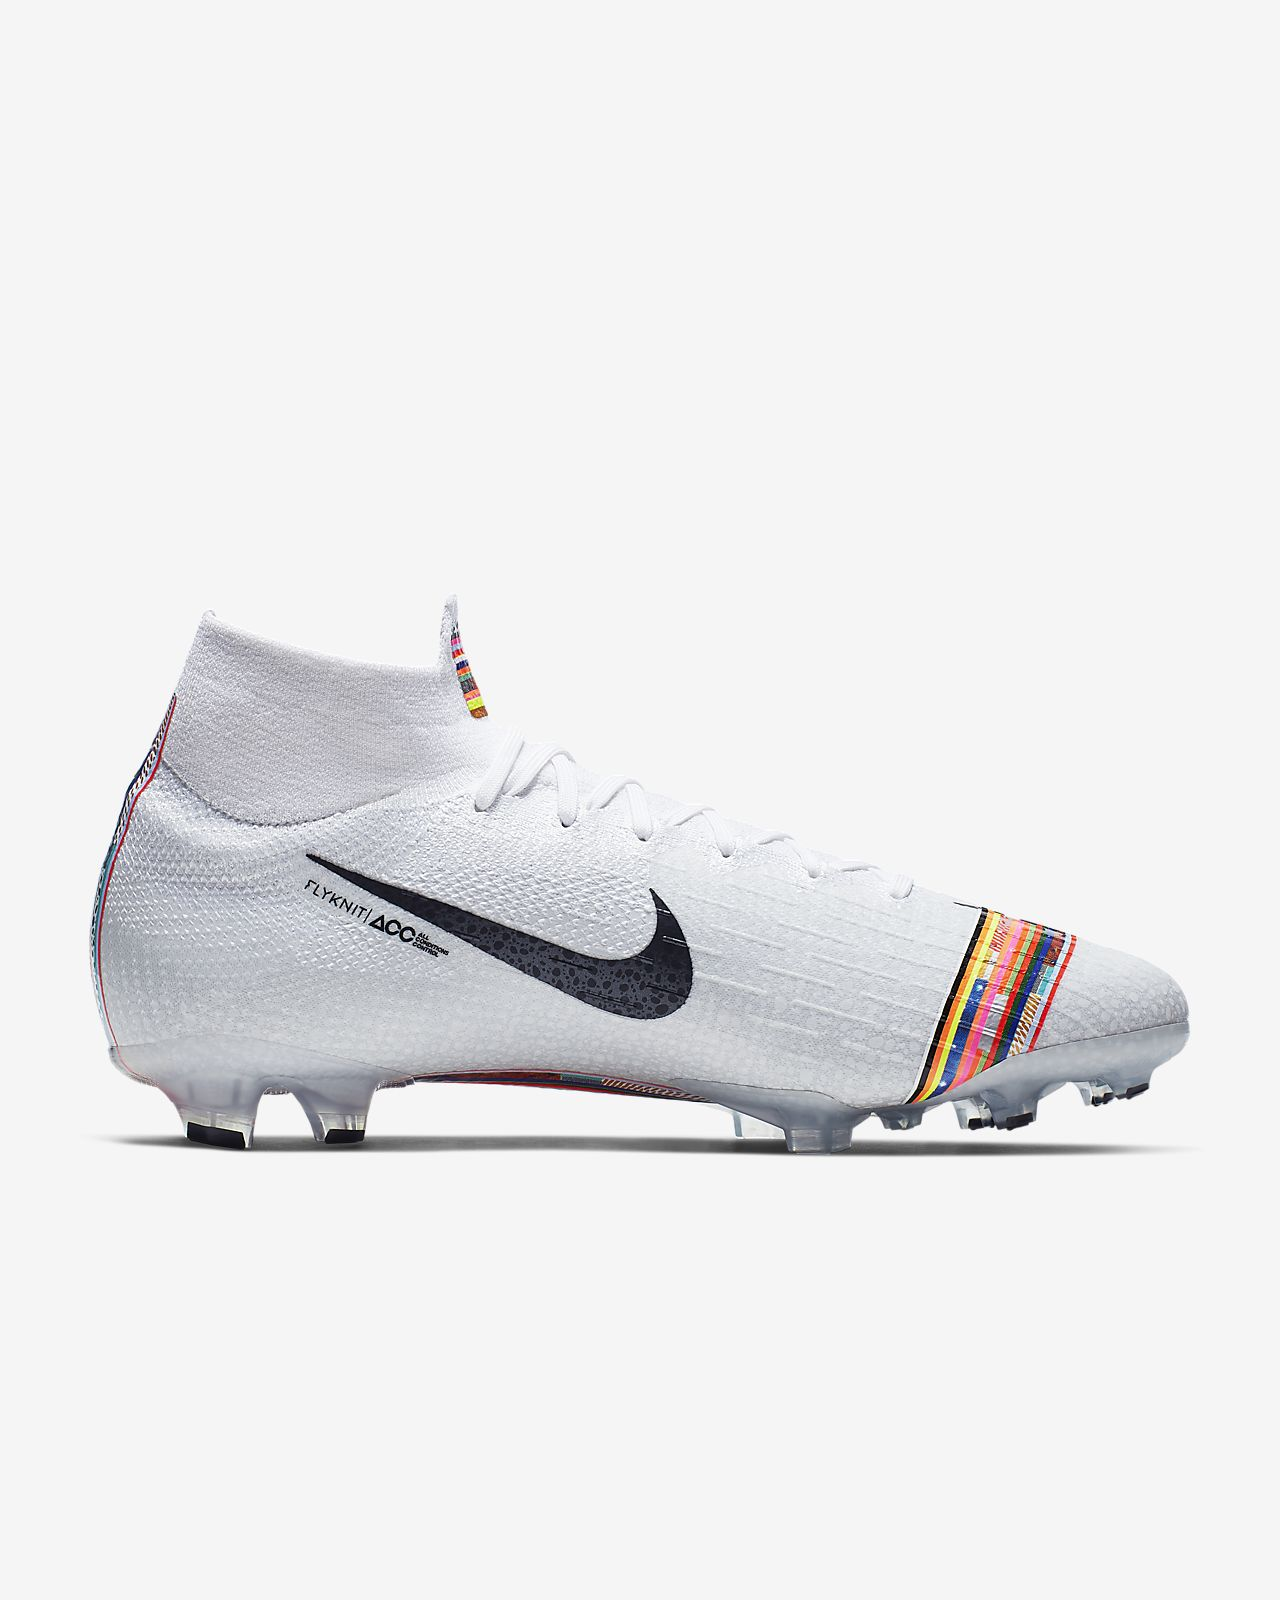 reputable site ab7c6 a1294 Nike Mercurial Superfly 360 Elite LVL UP SE FG Firm-Ground Football Boot